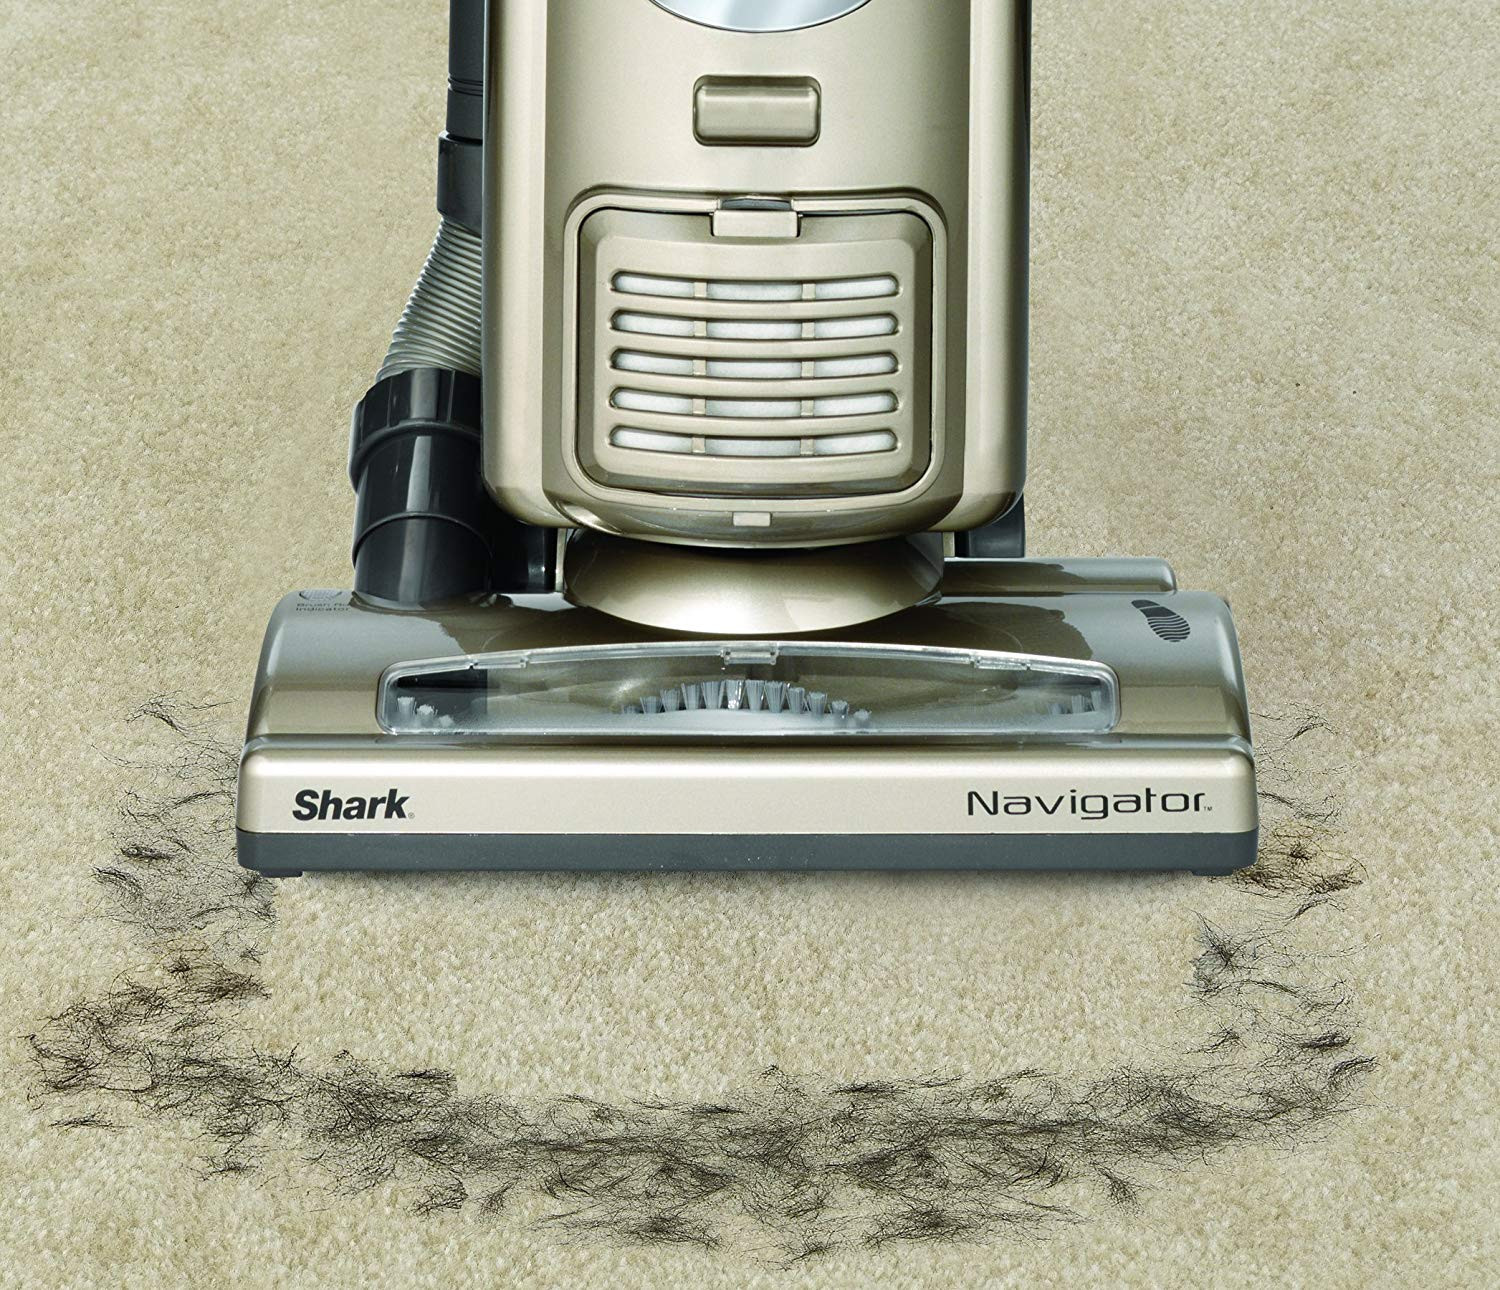 Best Shark Vacuum for Pets and Hardwood Floors Of Amazon Com Shark Navigator Deluxe Upright Corded Bagless Vacuum for Regarding Amazon Com Shark Navigator Deluxe Upright Corded Bagless Vacuum for Carpet and Hard Floor with Anti Allergy Seal Nv42 Champagne Home Kitchen